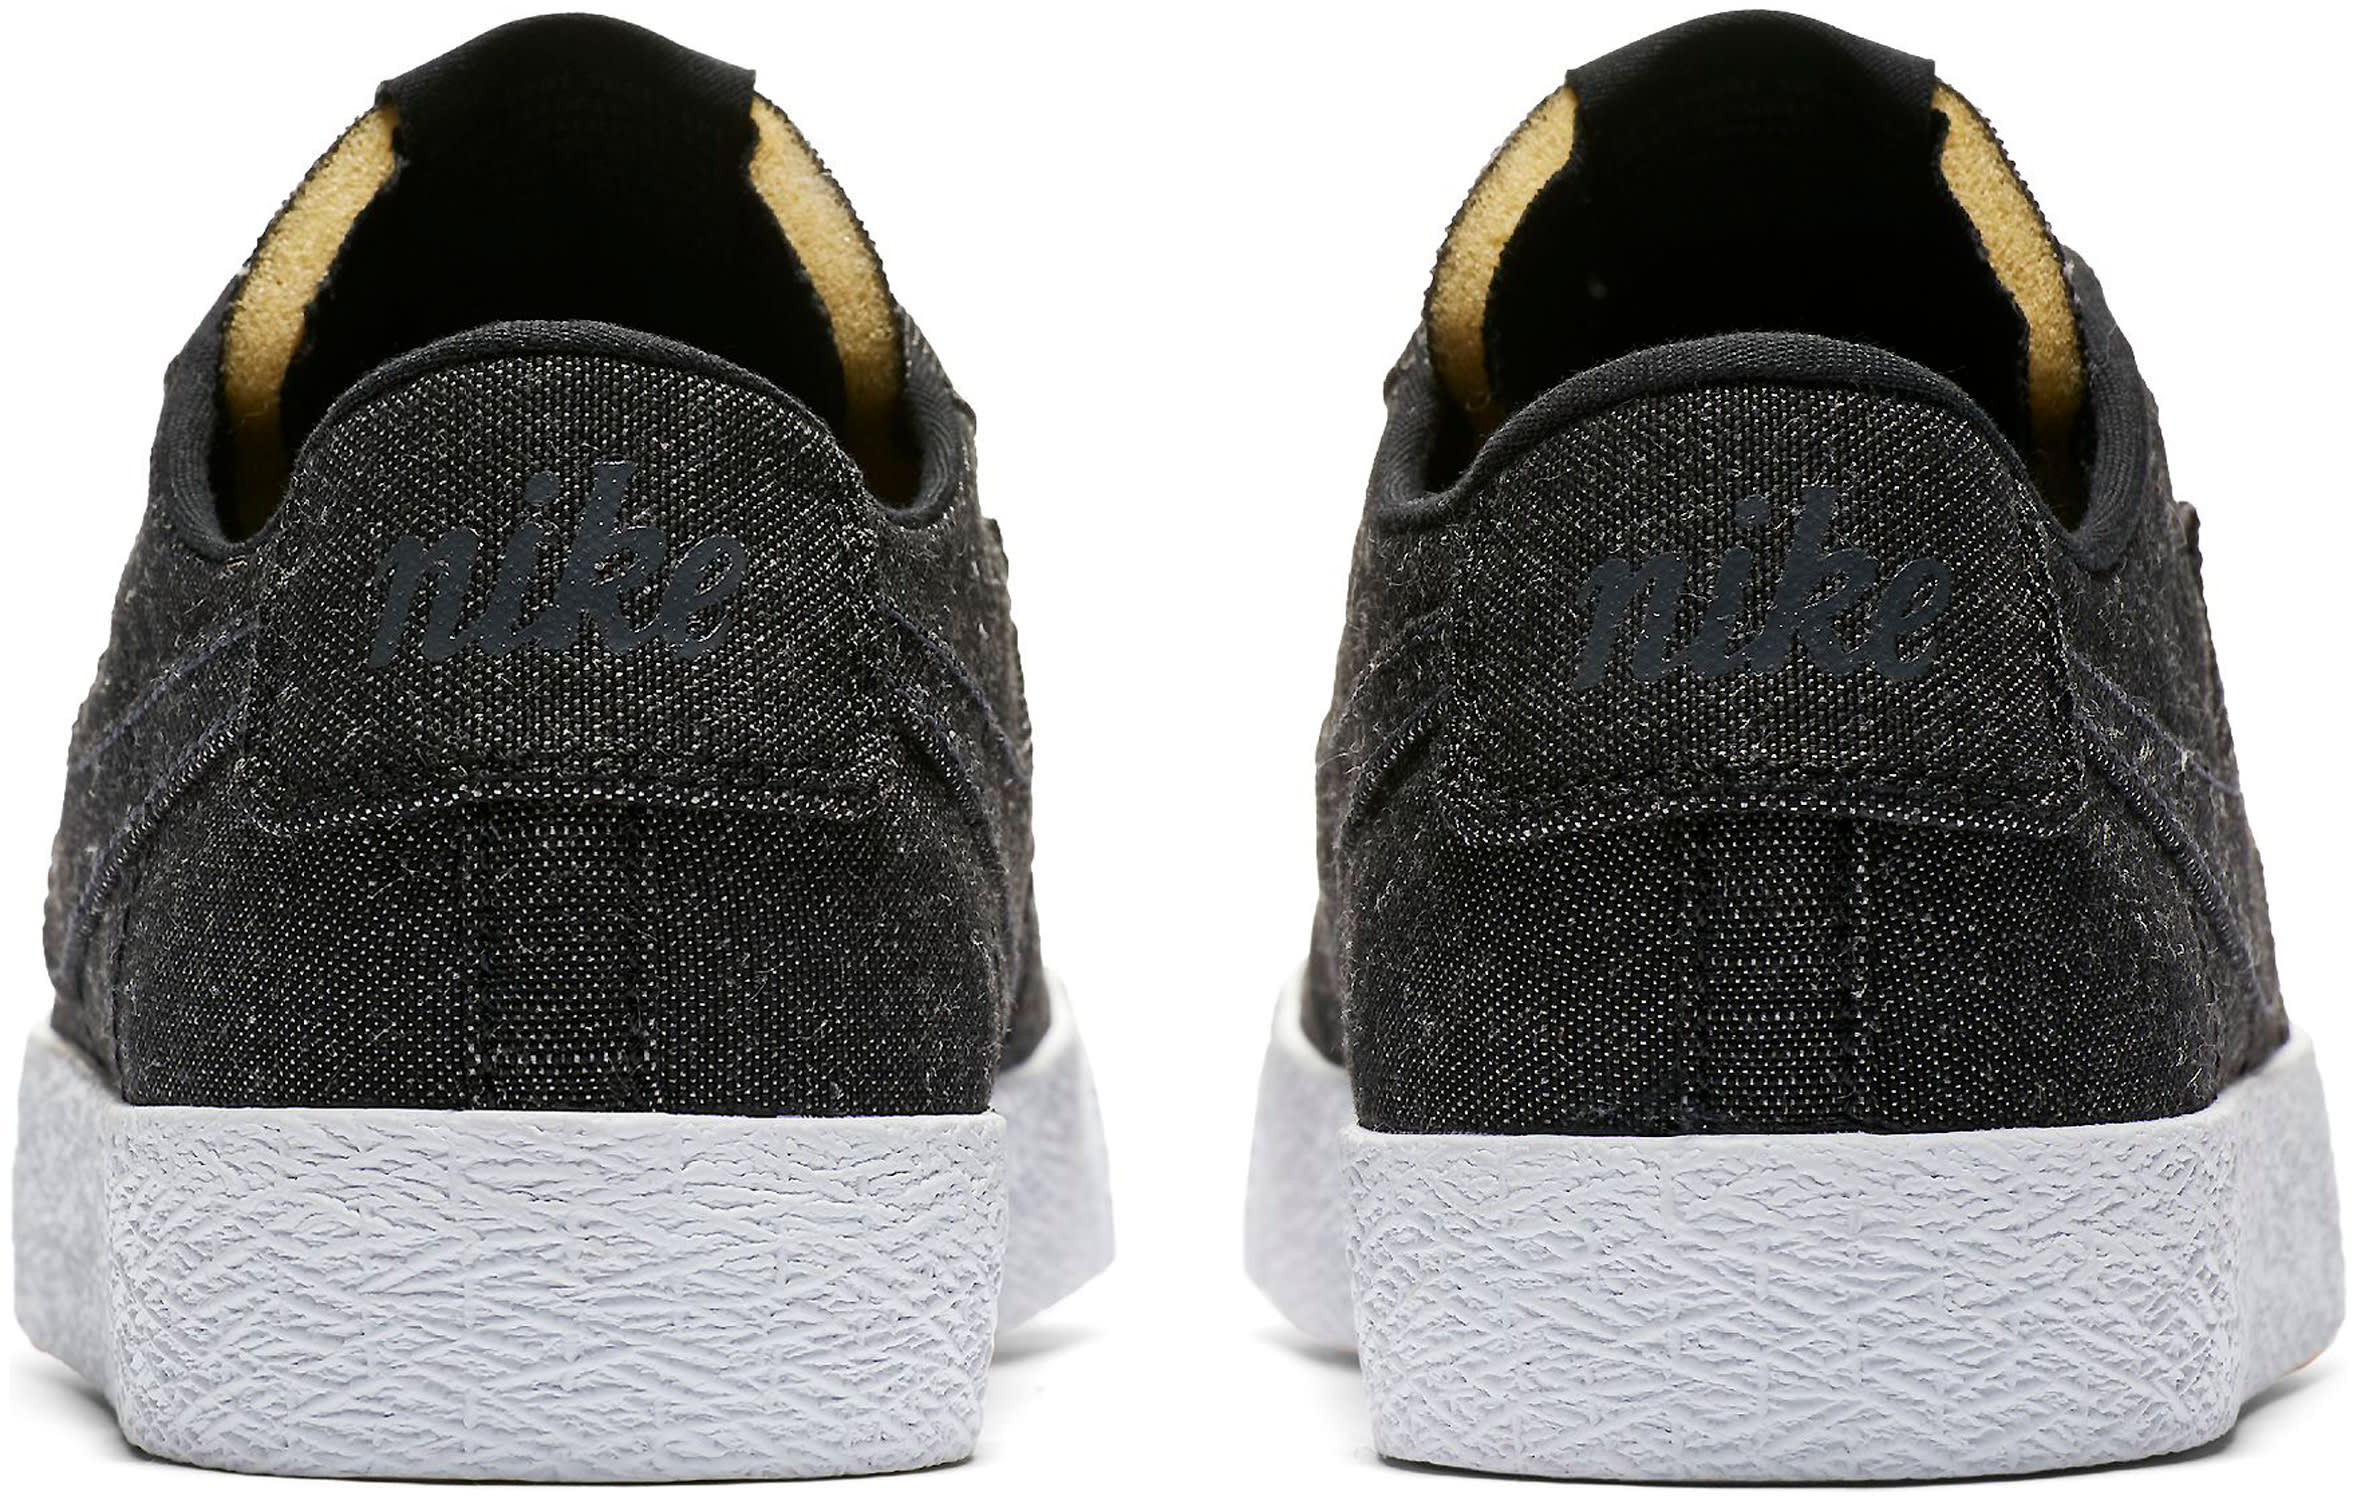 premium selection 4ecb9 3cc52 Nike SB Zoom Blazer Low Canvas Deconstructed Skate Shoes - thumbnail 5